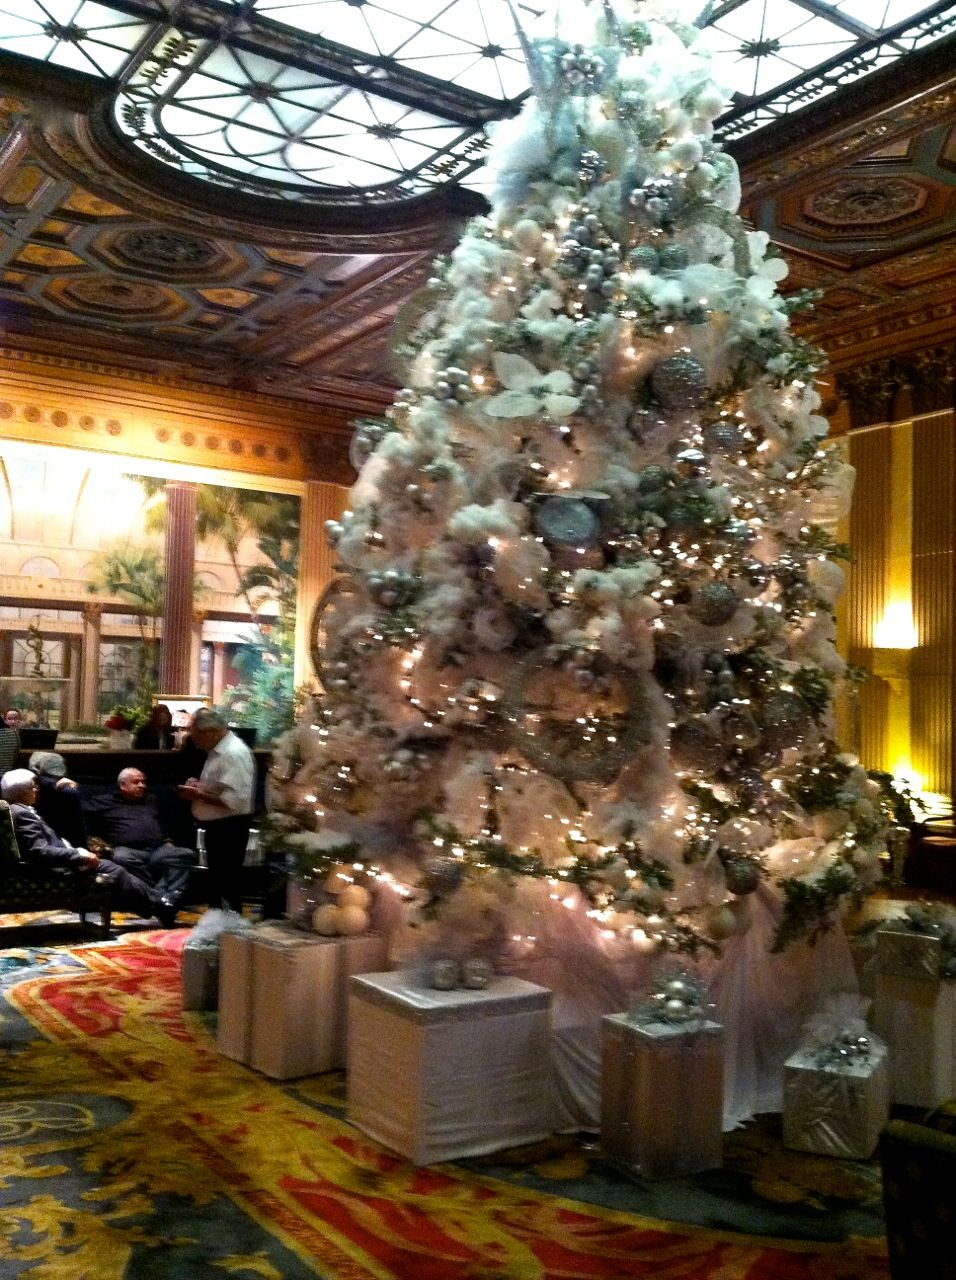 christmas decorations to suit the scale of the millennium biltmore hotel in downtown la zippertraelcom digital edition